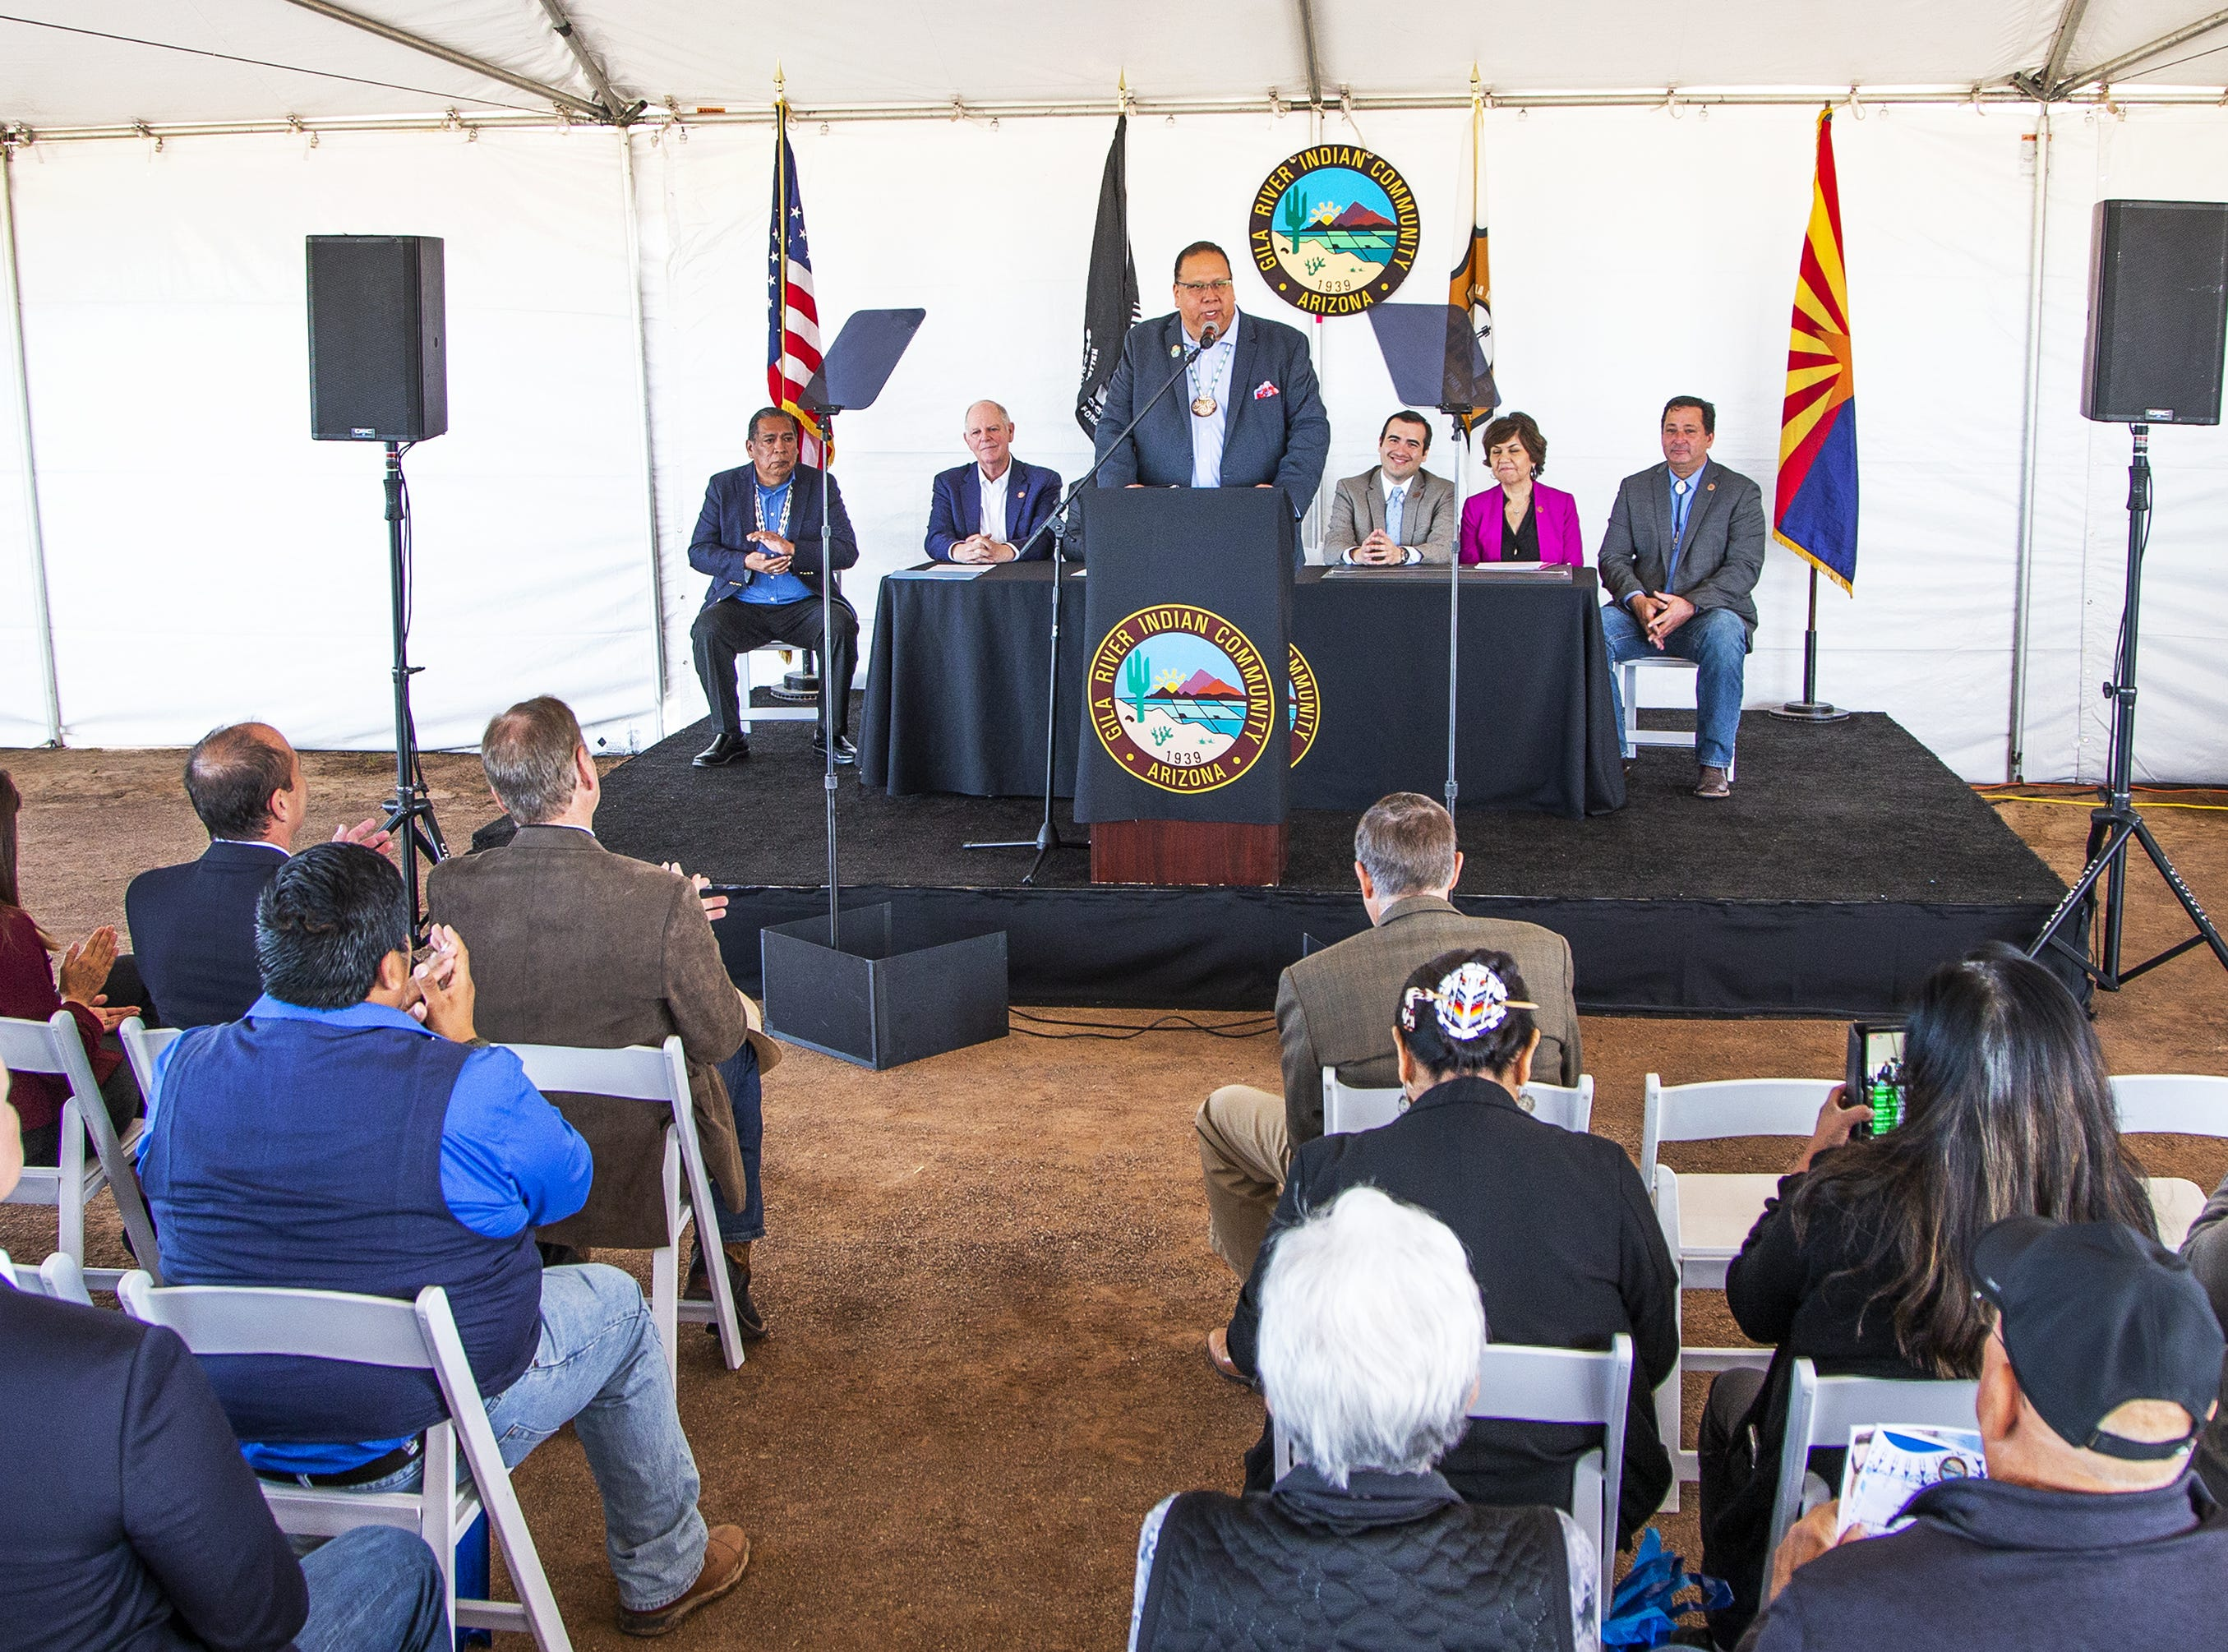 Gila River Indian Community Gov. Stephen Lewis welcomes the crowd to the MAR 5 Interpretive Trail grand opening ceremony near Sacaton, Friday, March 1, 2019.